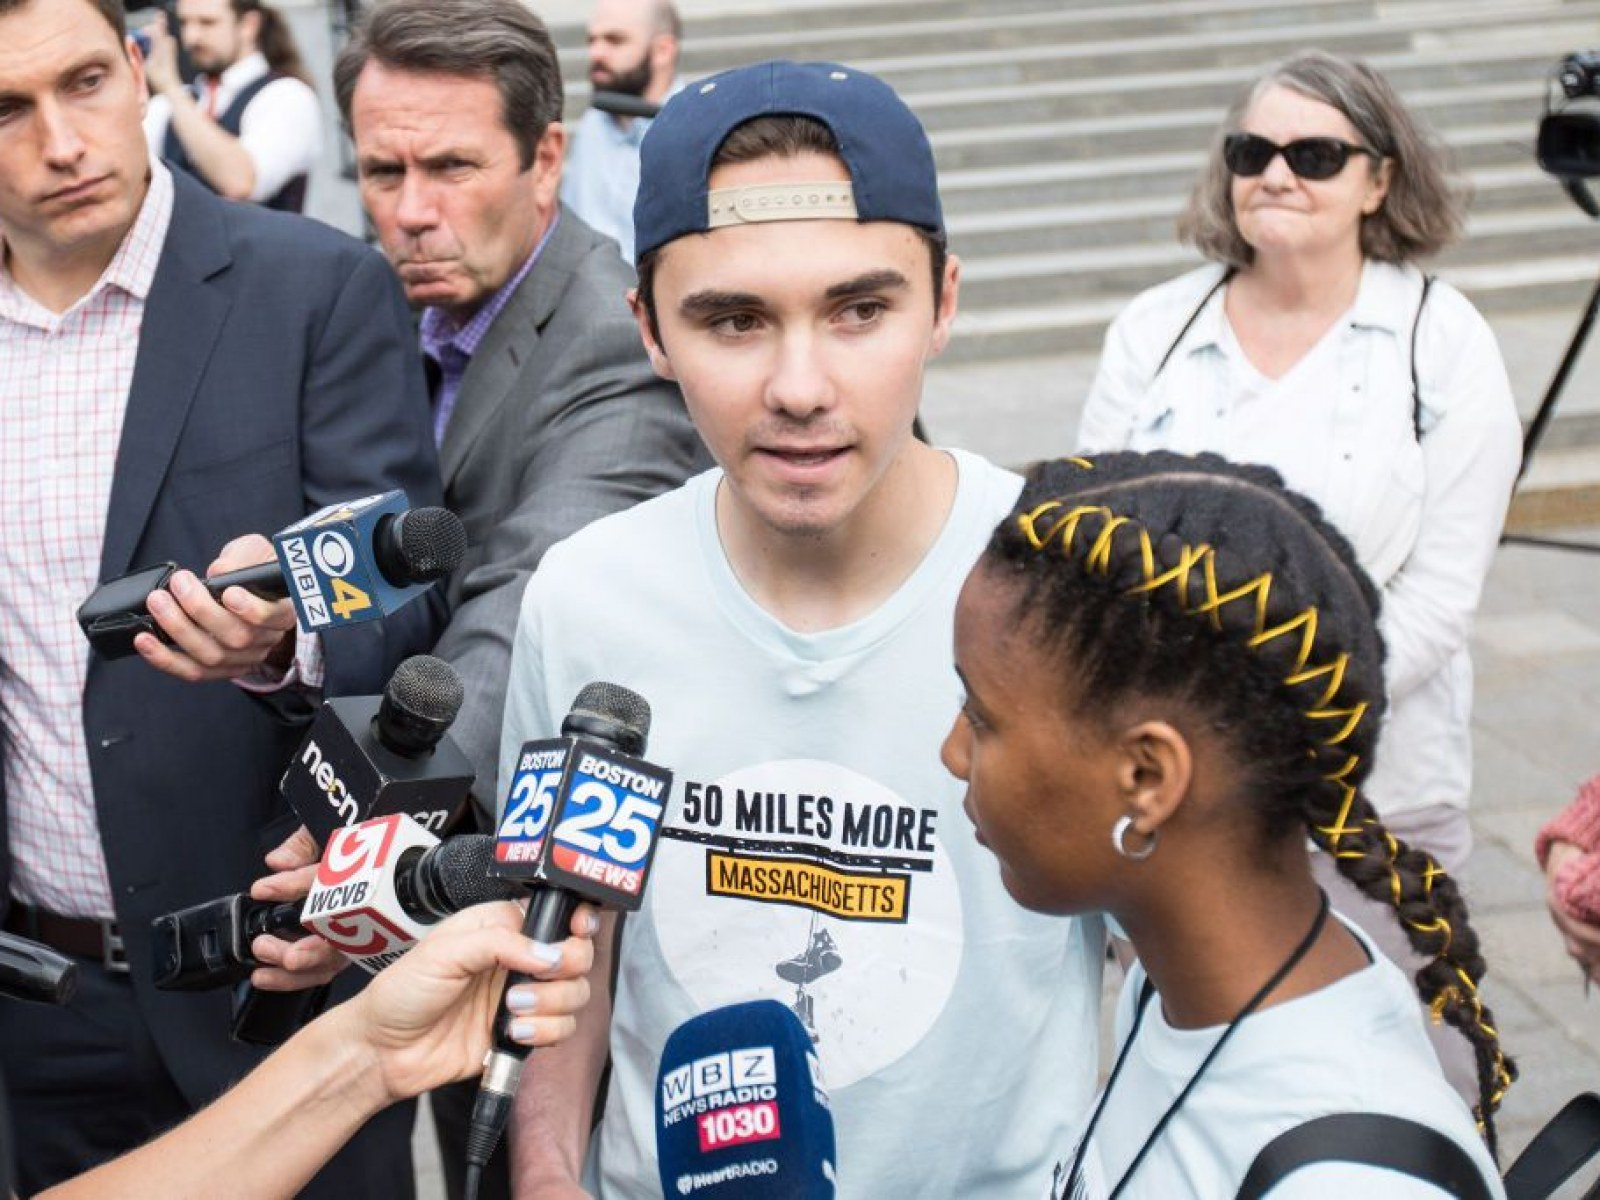 David Hogg Sends 'Thoughts and Prayers' to NRA After Maria